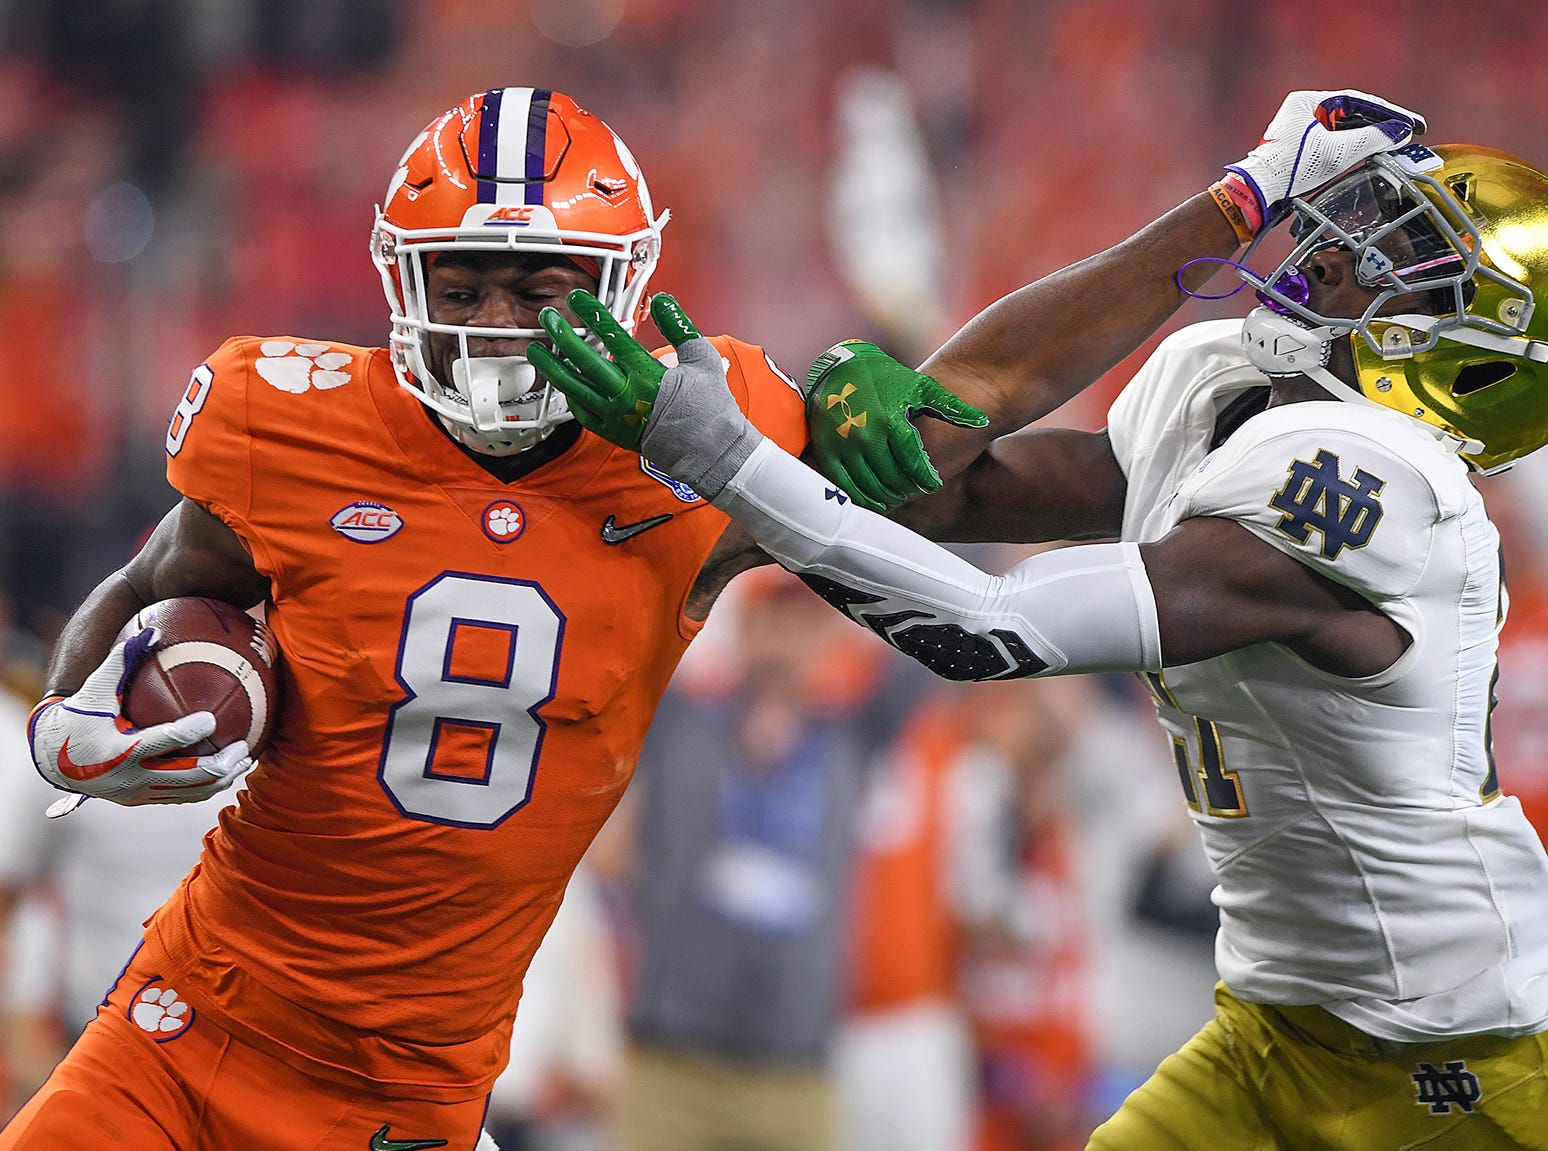 Clemson wide receiver Justyn Ross (8) stiff arms Notre Dame safety Alohi Gilman (11) on the way to scoring on a 52 yard reception during the 2nd quarter of the Goodyear Cotton Bowl at AT&T stadium in Arlington, TX Saturday, December 29, 2018.